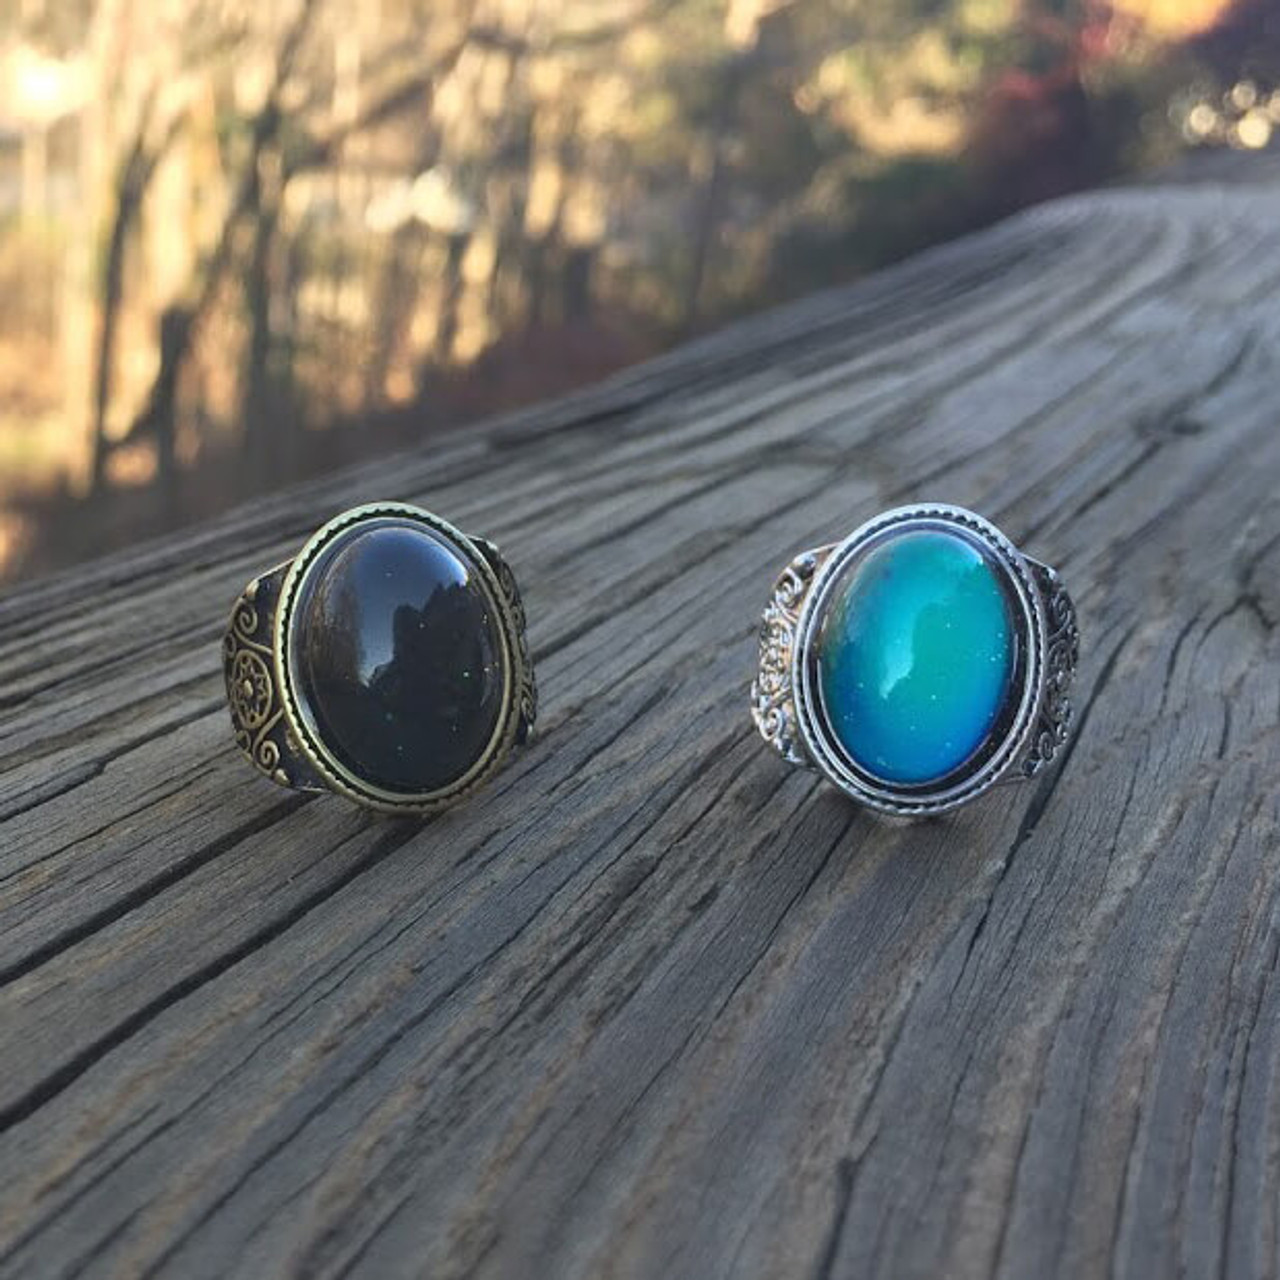 VINTAGE STYLE MOOD RING